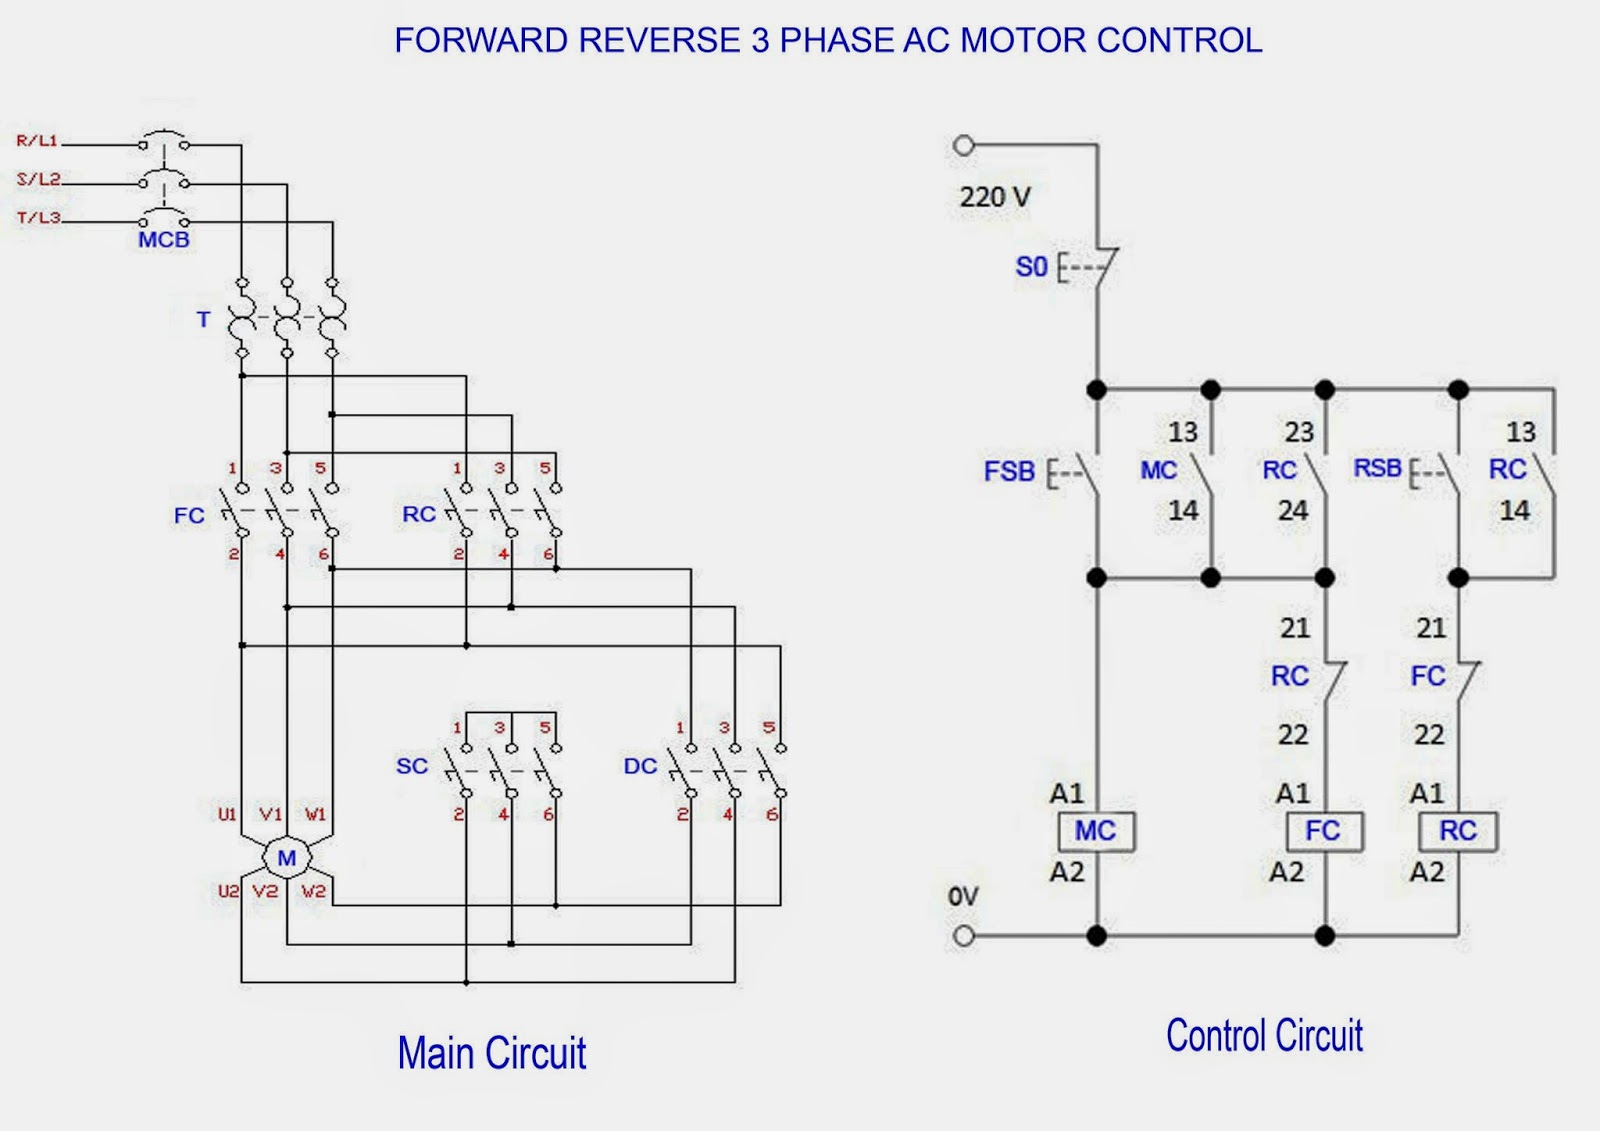 phase delta motor wiring diagram 2014 electrical winding wiring diagrams forward reverse star delta wiring diagram